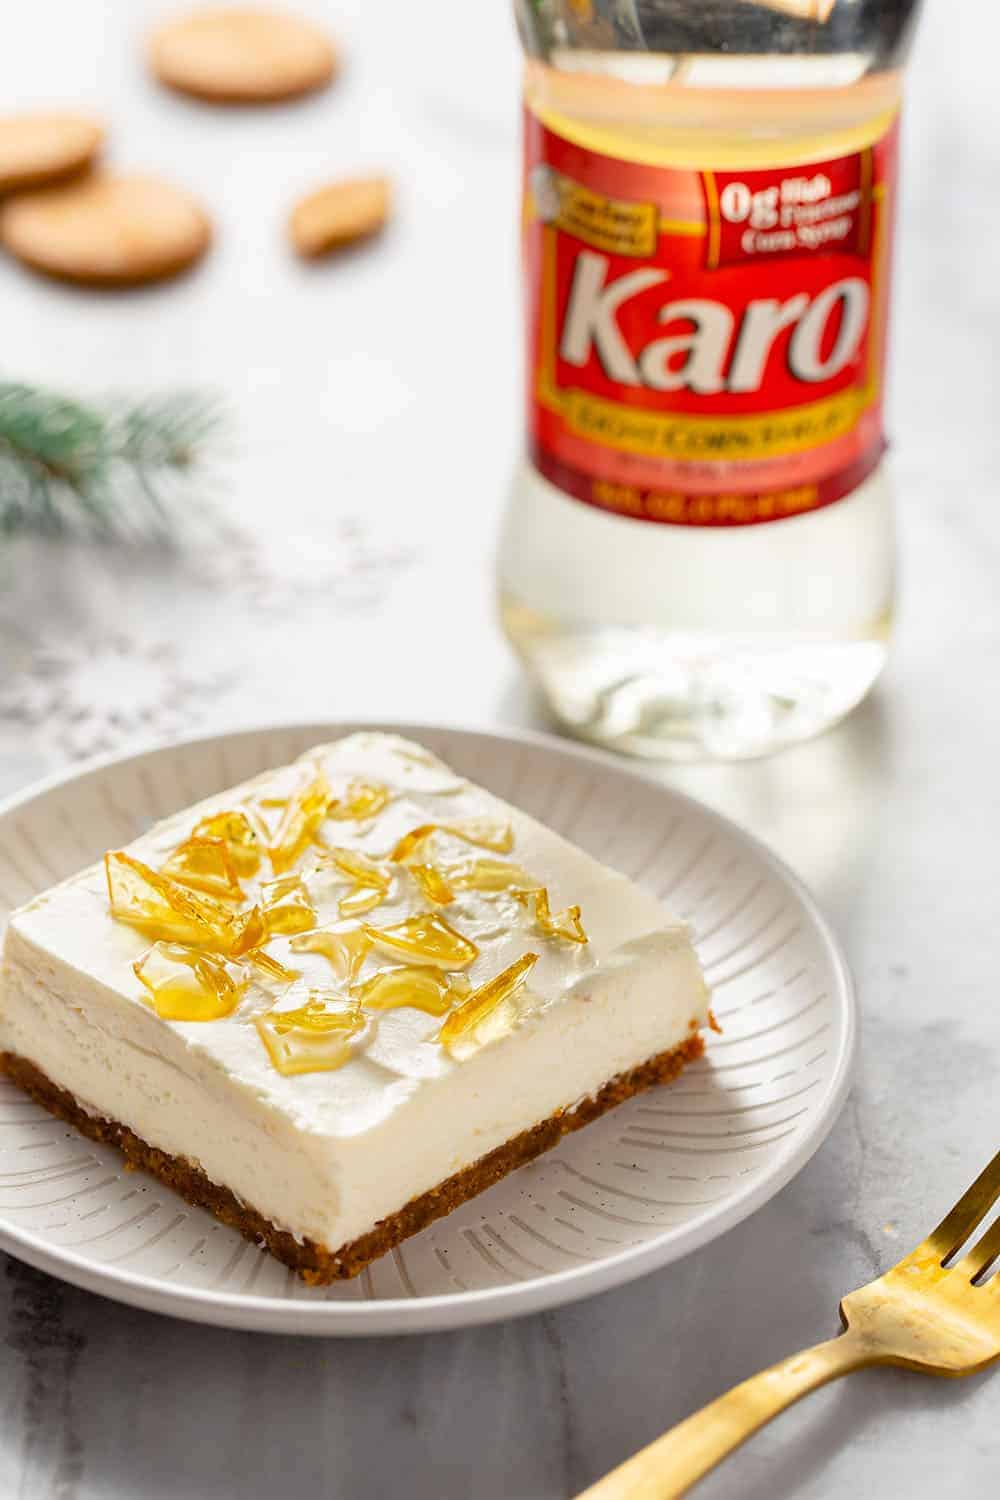 No-bake cheesecake bar with cracked sugar topping on a white plate with a bottle of corn syrup in the background